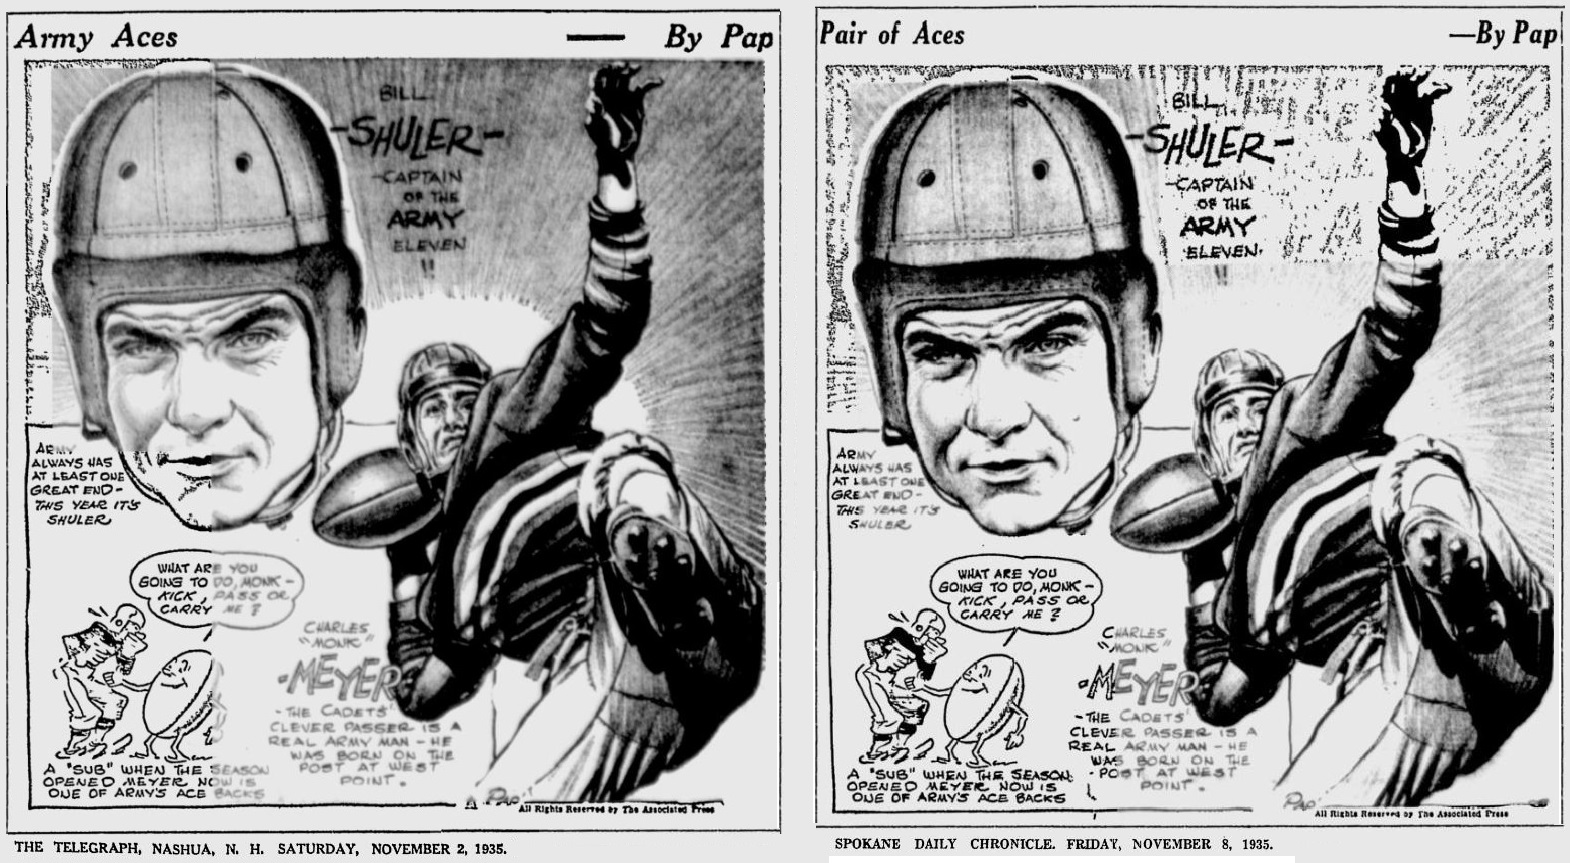 armyfb_1935_billshuler_monkmeyer_bypap_telegraph_nov21935_spokanedailychronicle_nov81935